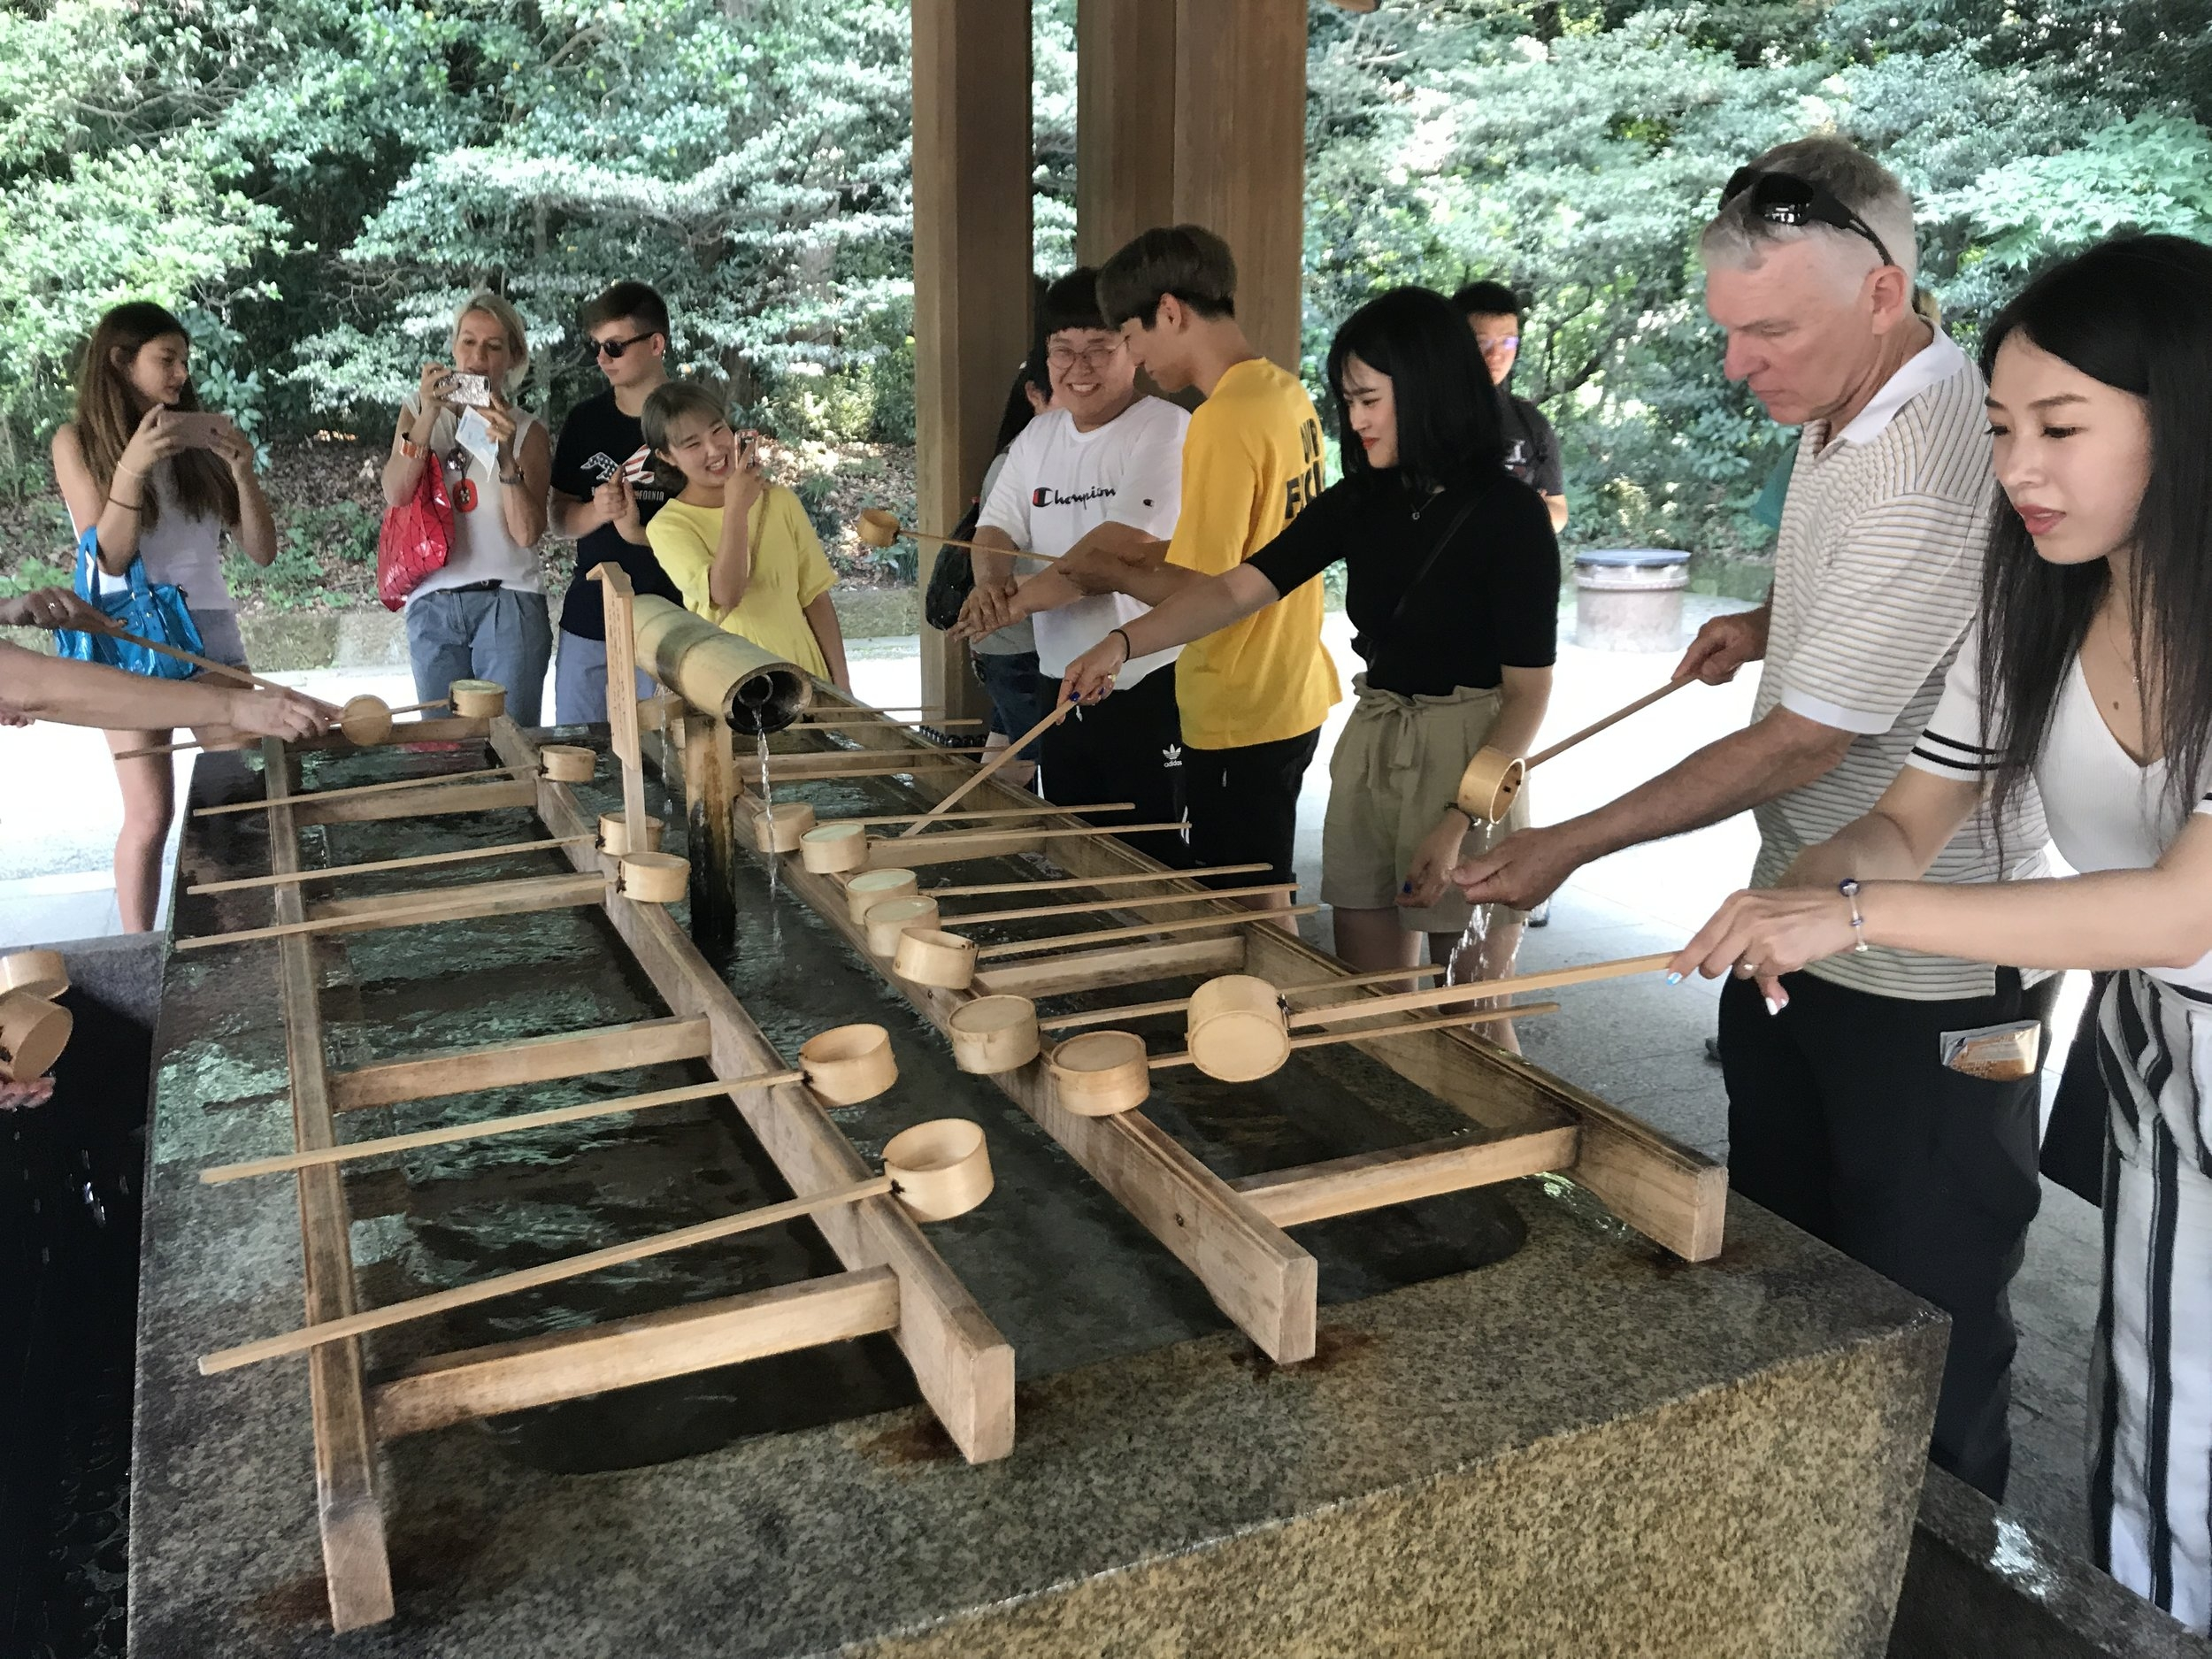 Washing hands at a shrine